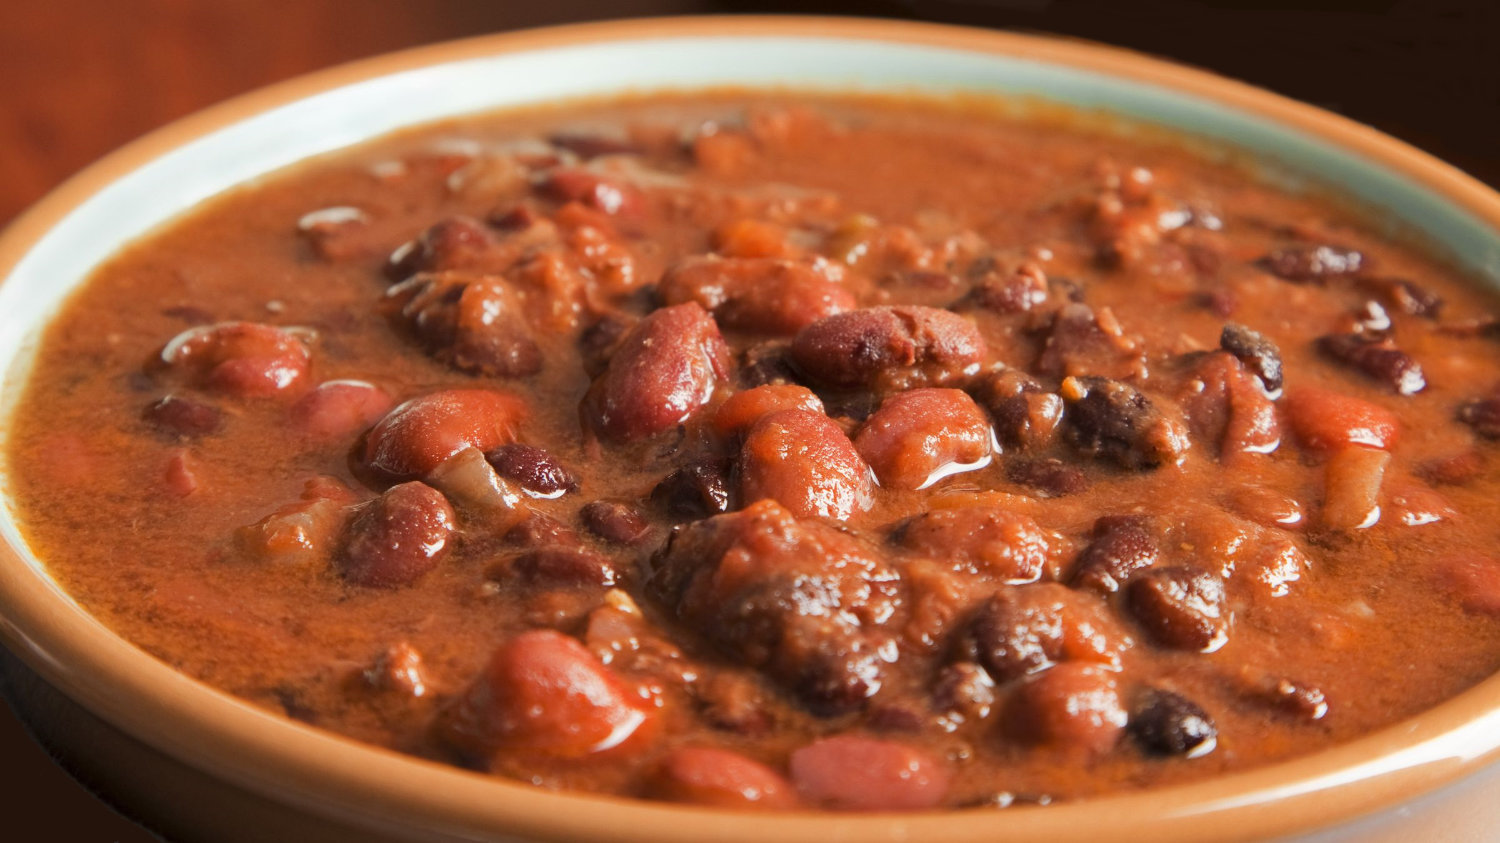 Bowl of fresh TexMex chili